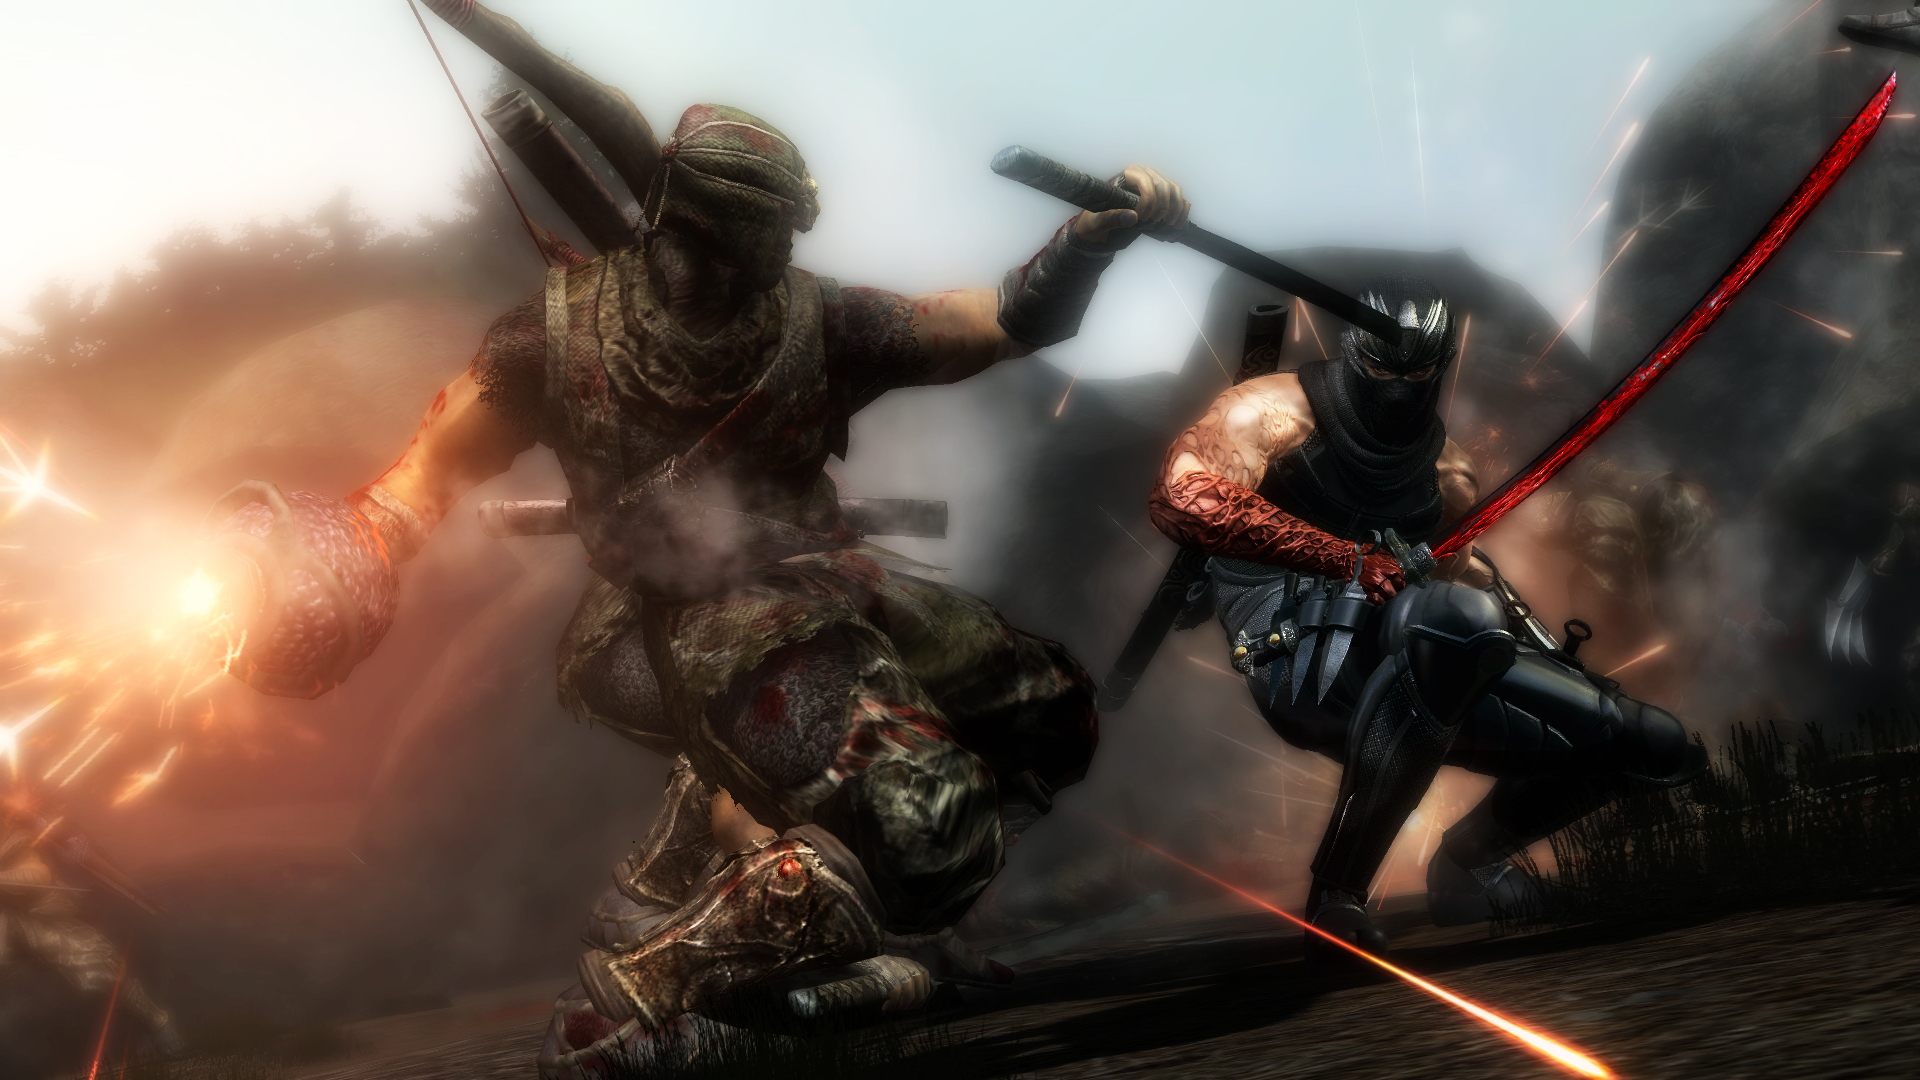 The Ninja Gaiden 3 Debut Trailer arrives